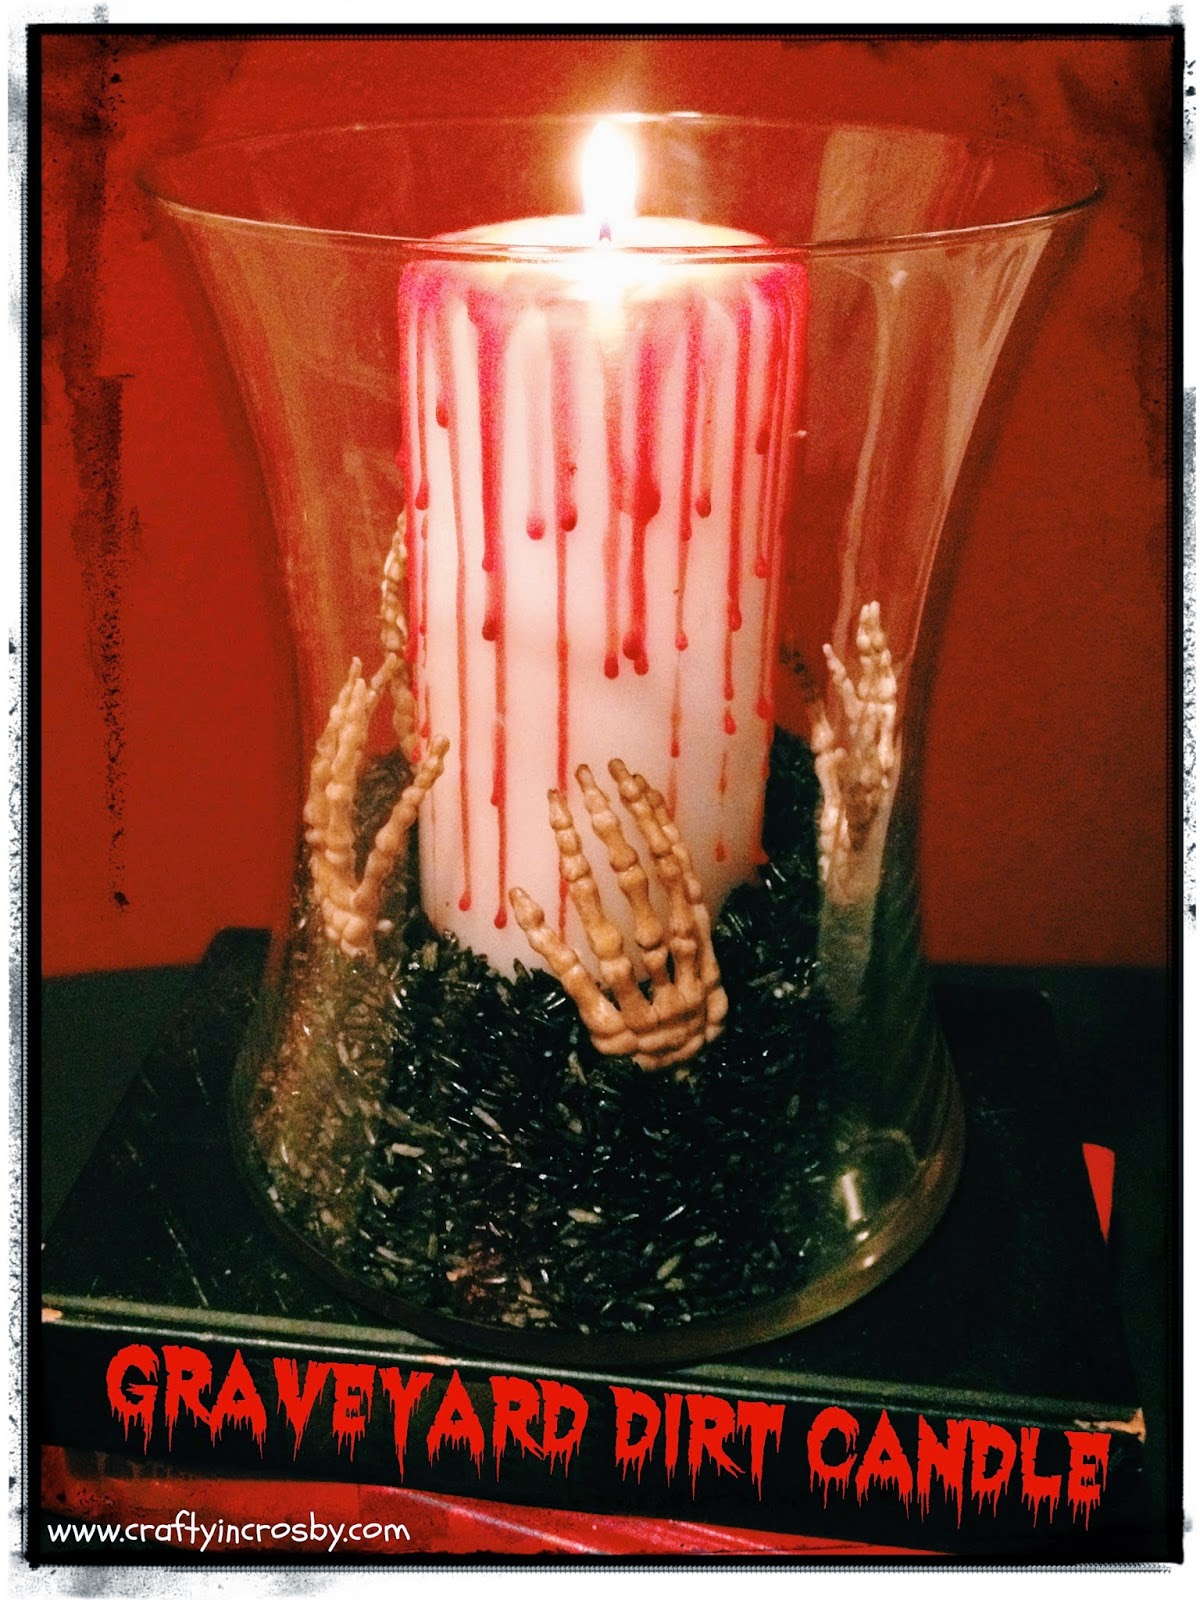 Halloween candle, Halloween DIY, Halloween decorations, skeleton hands,